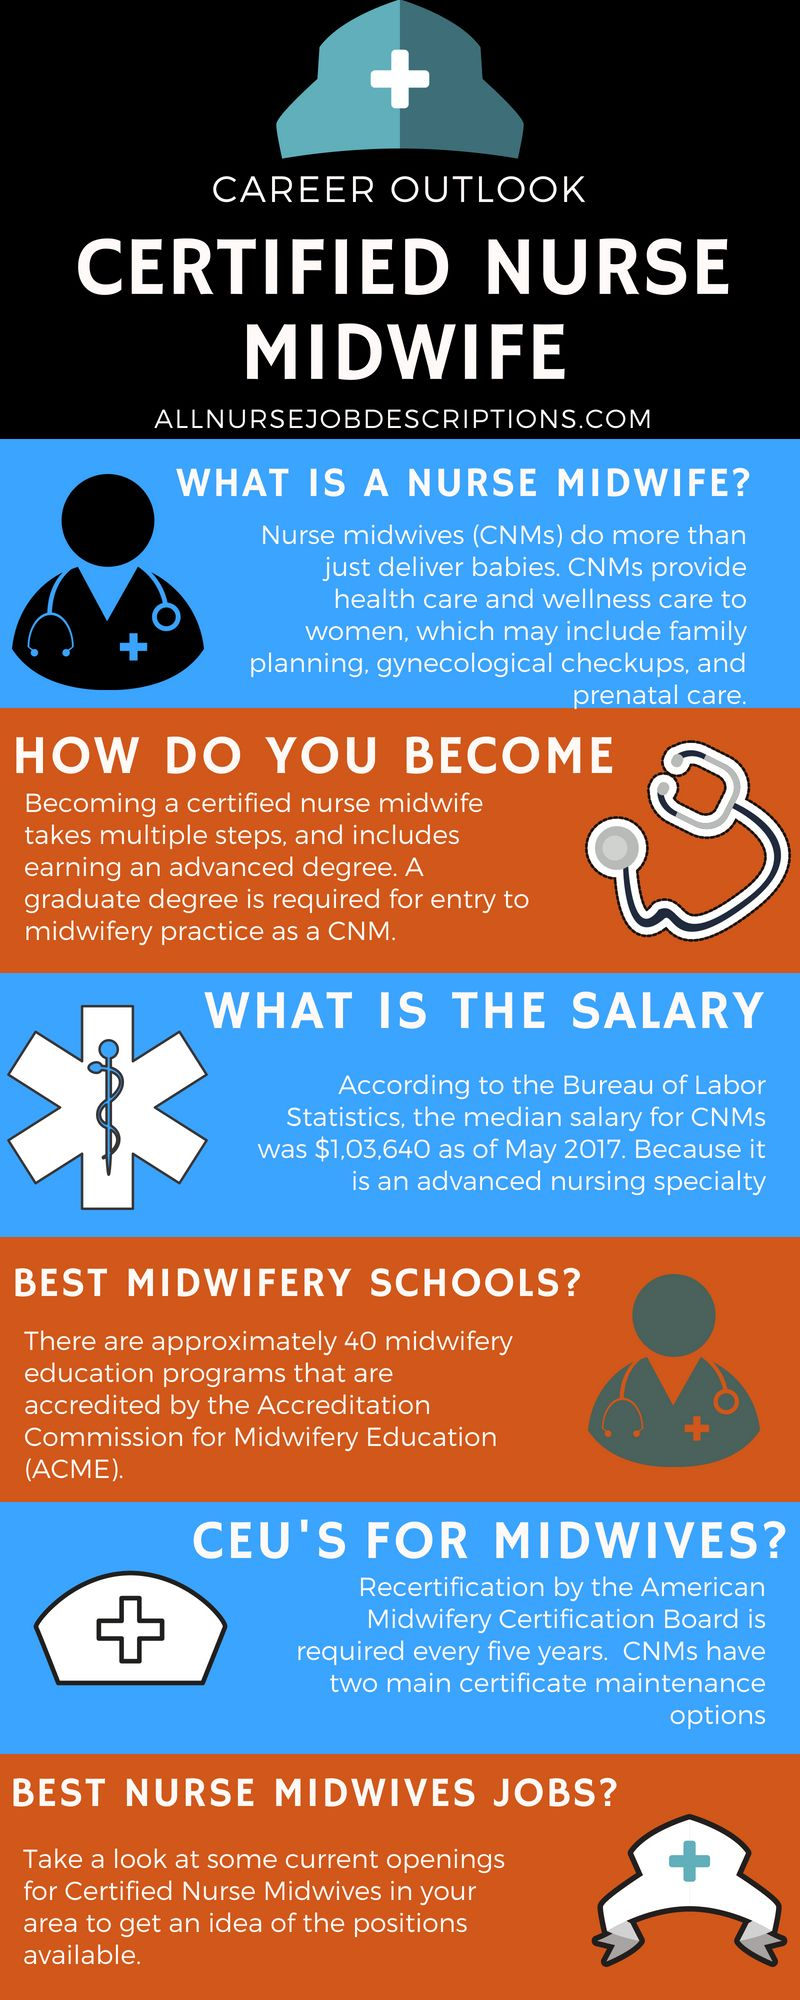 How To Become Certified Nurse Midwife Job Description And Salary